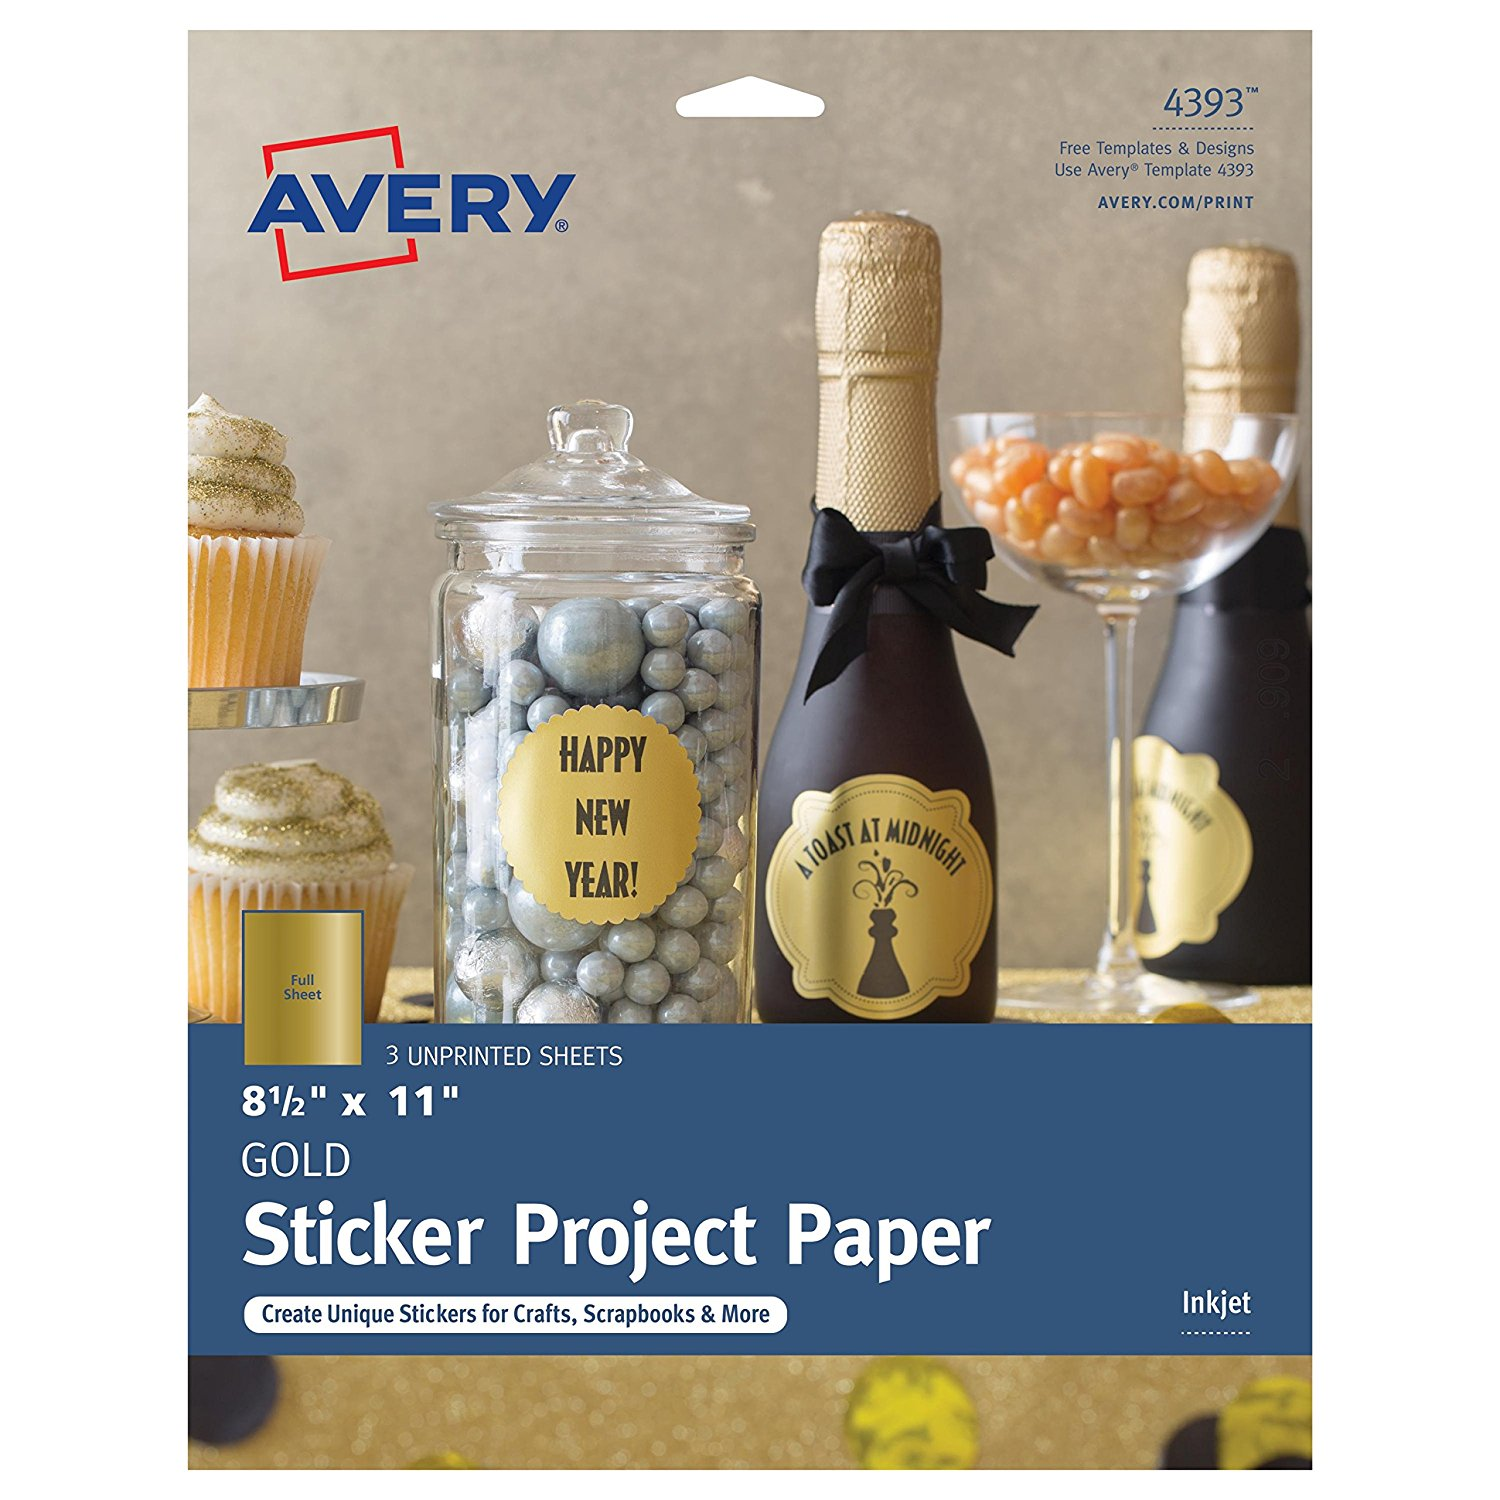 """Avery Gold Full-Sheet Sticker Project Paper, 8-1/2"""" x 11"""", 3 Sheets (4393)"""